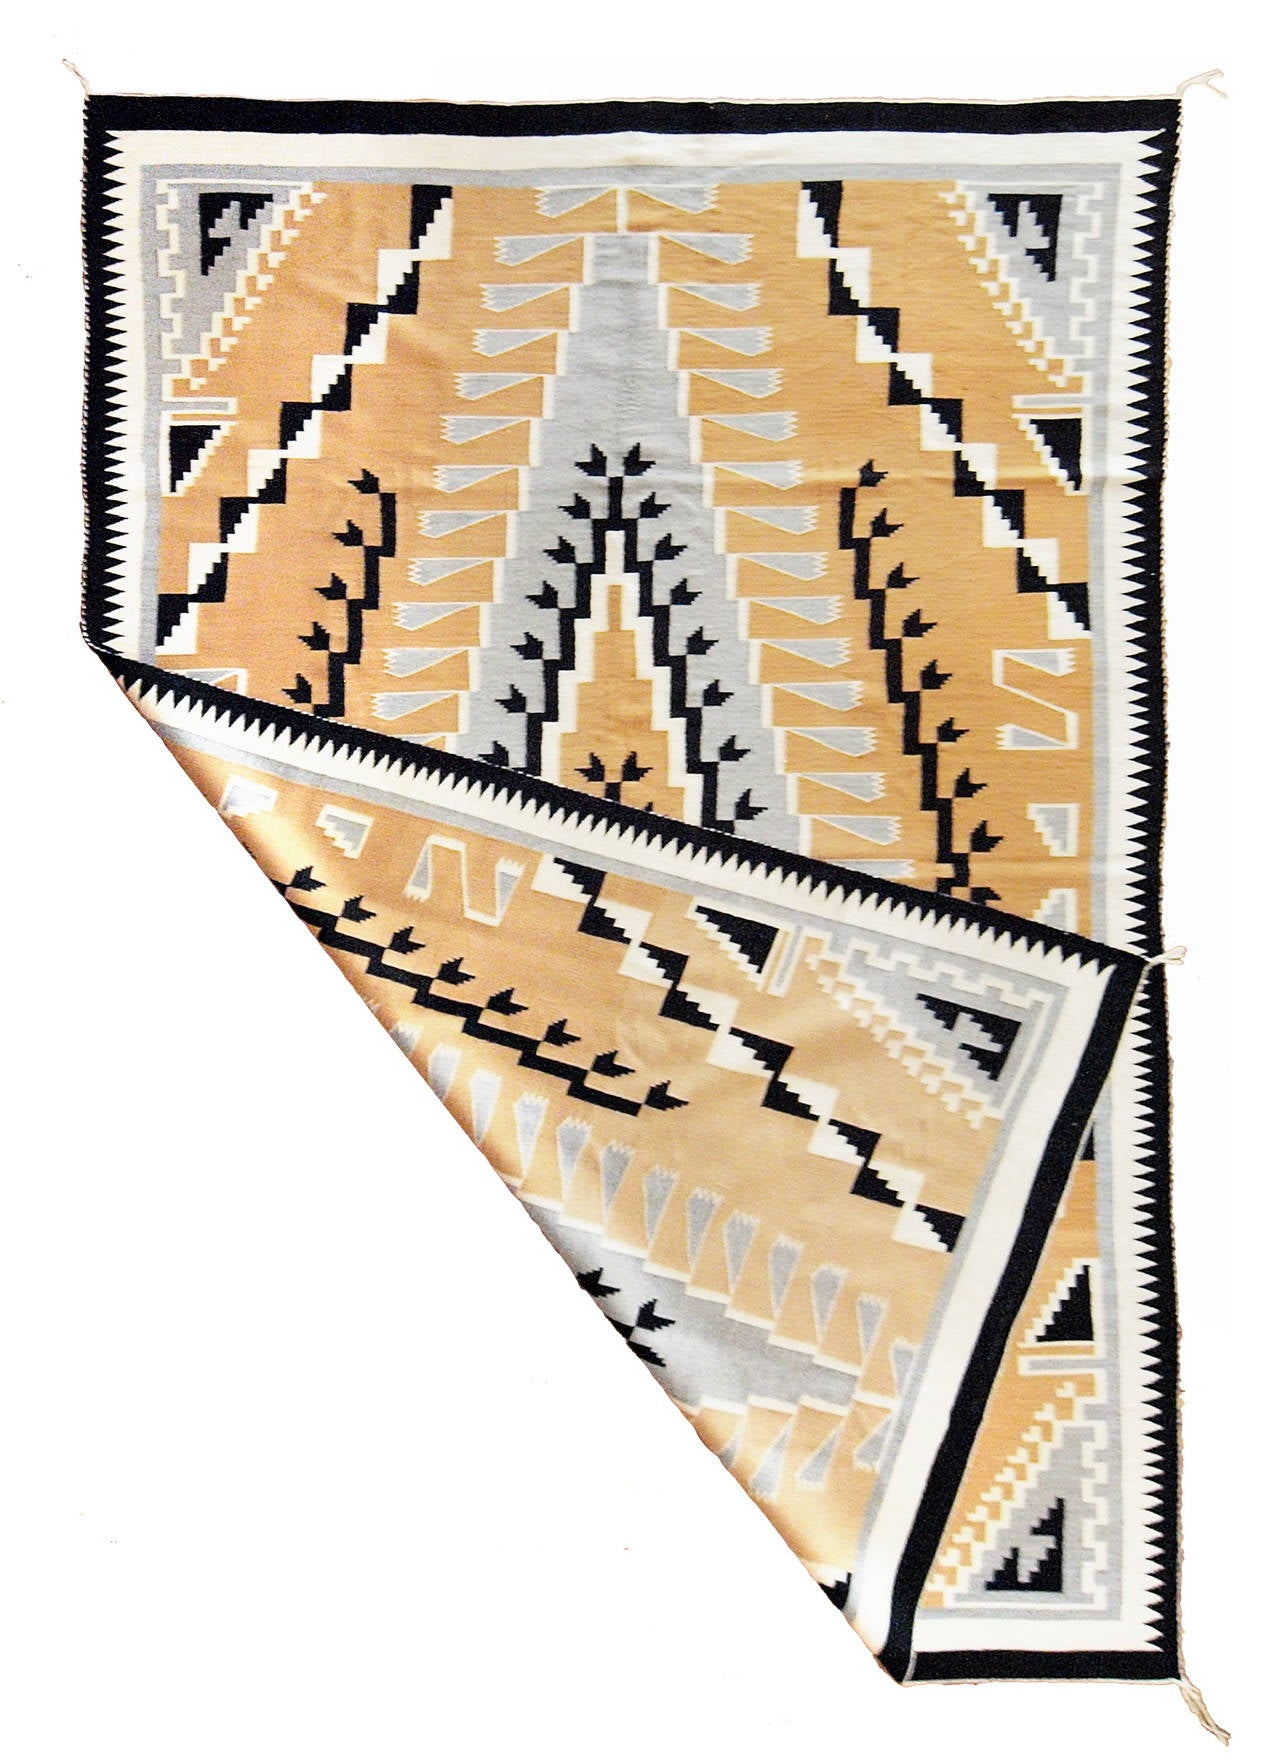 A large area rug with aCrystal Trading Post design. Woven of native hand-spun wool in natural fleece colors of gray, ivory, black and camel/beige.  This textile is well suited for use on the floor as an area rug, as a wall hanging or furniture